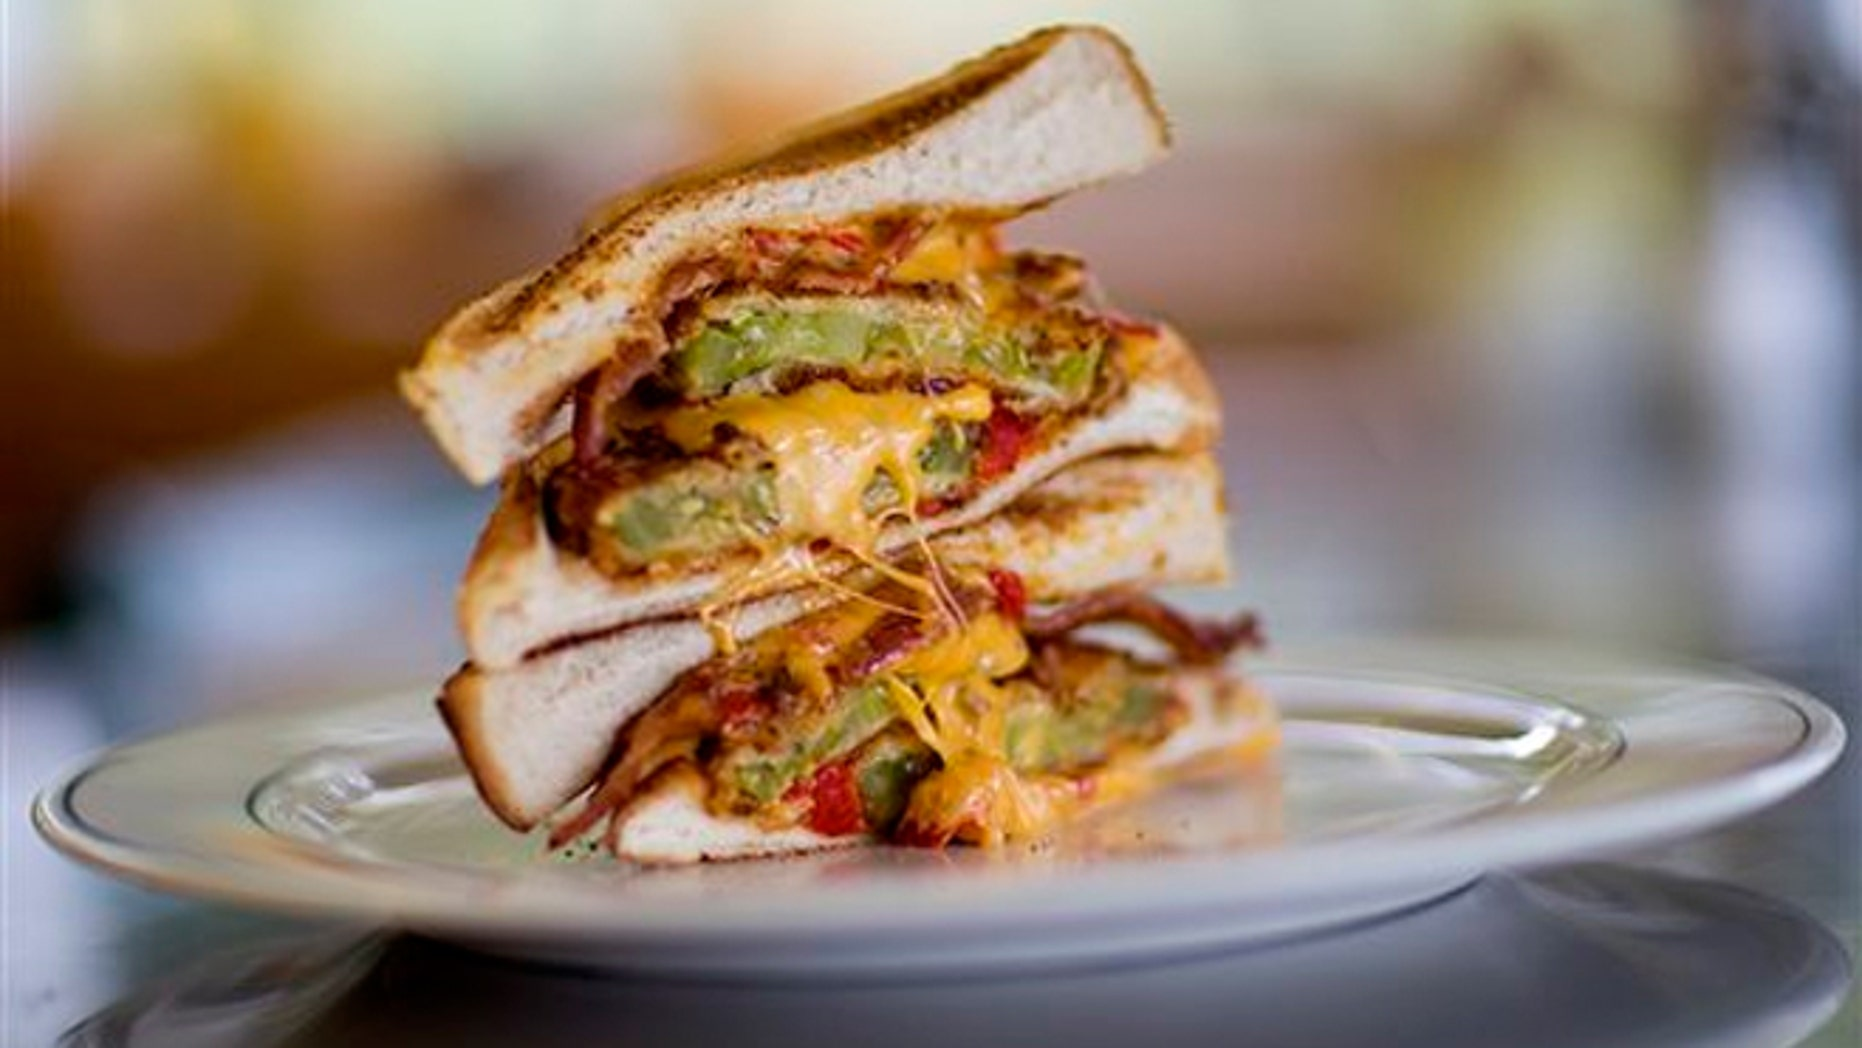 The Grant Stack, a sandwich made with Texas toast, fried green tomatoes, bacon and pimento cheese at the Home grown restaurant.